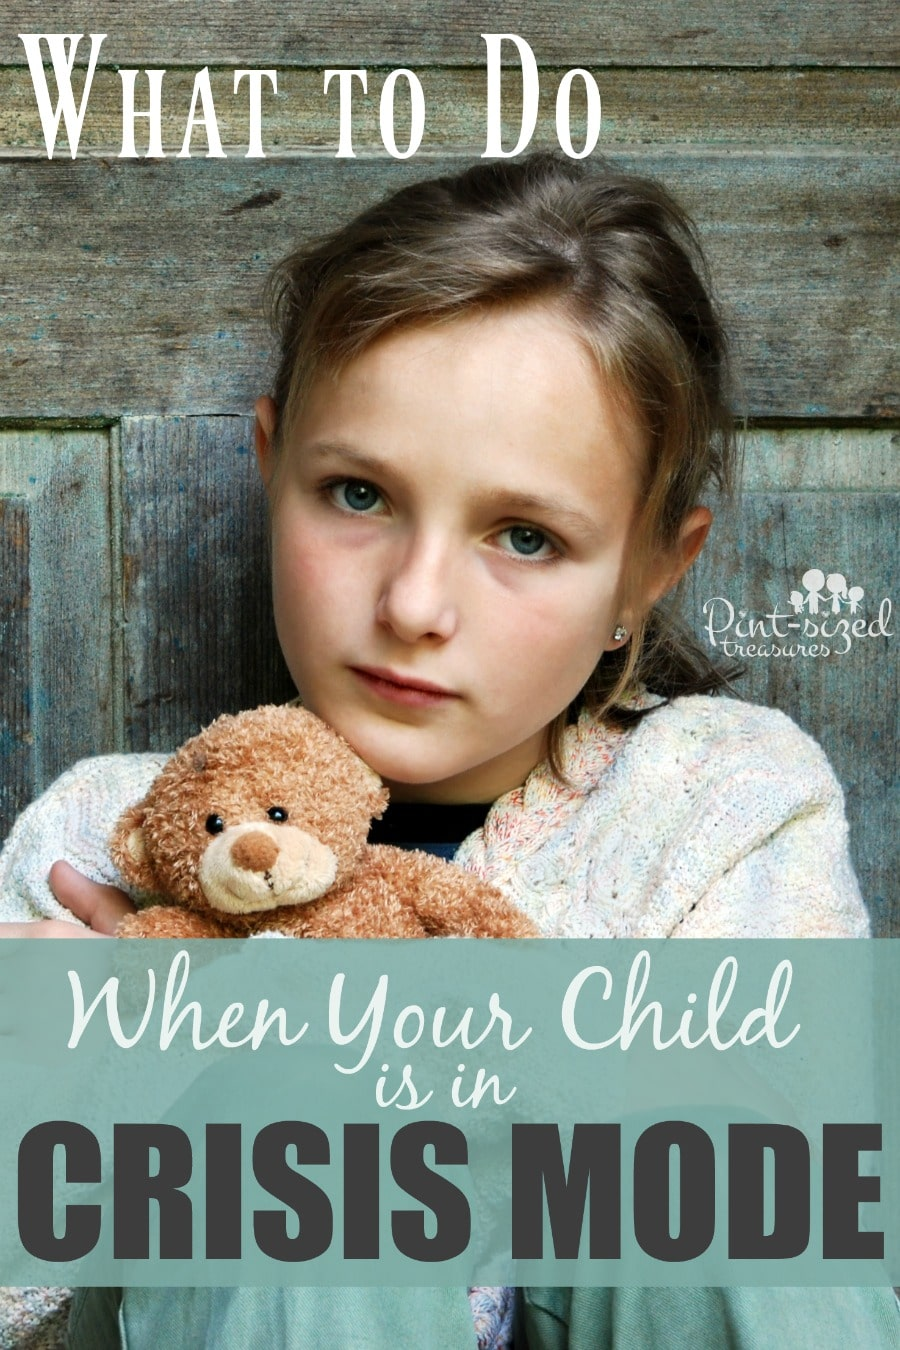 What to do When Your Child is in Crisis Mode